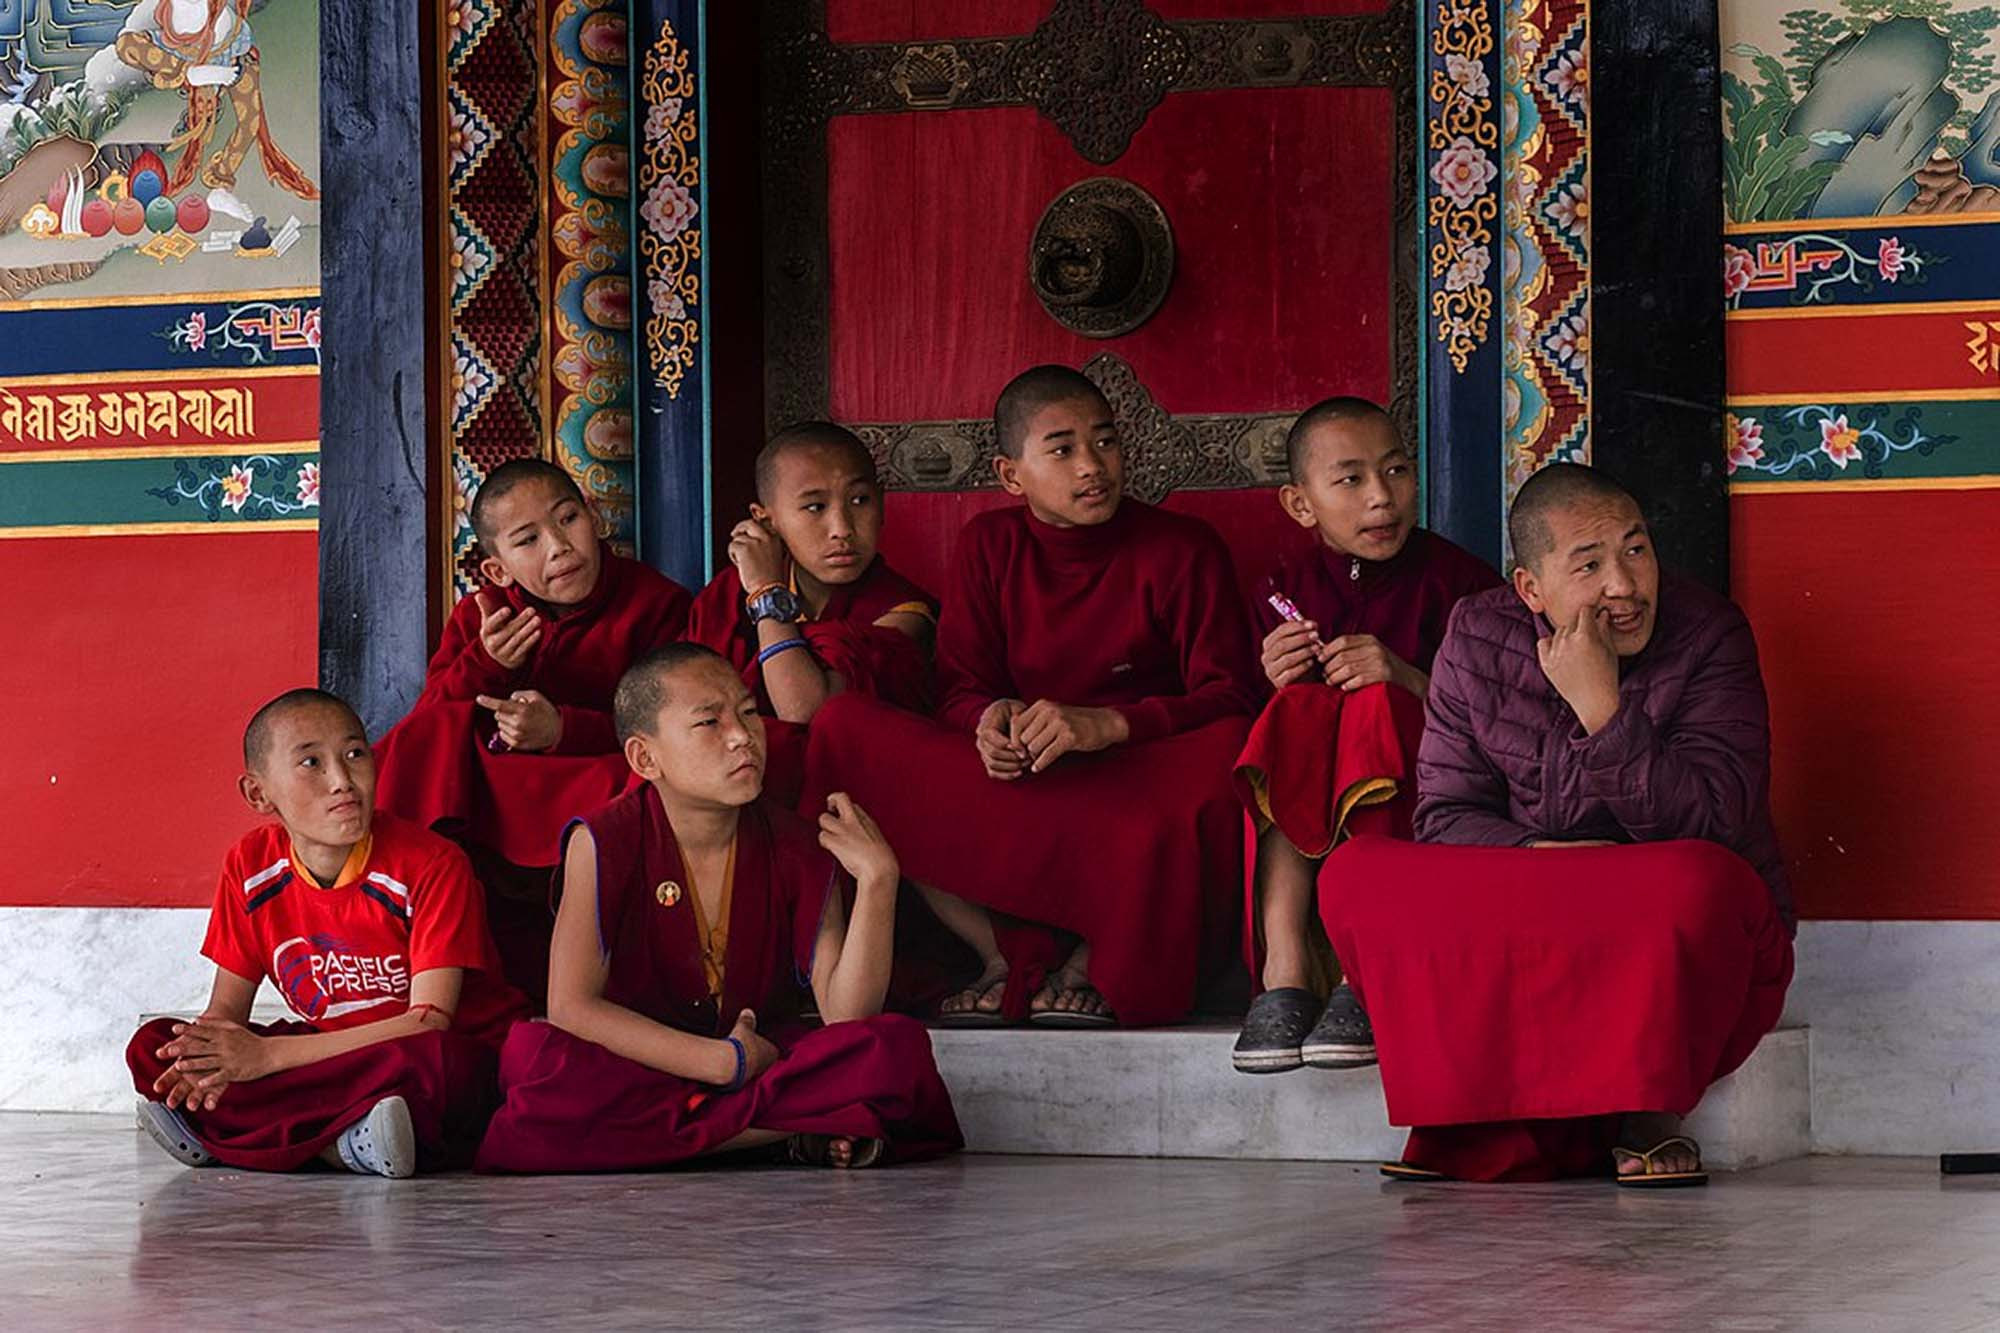 Young monks on a doorstep, Nepal